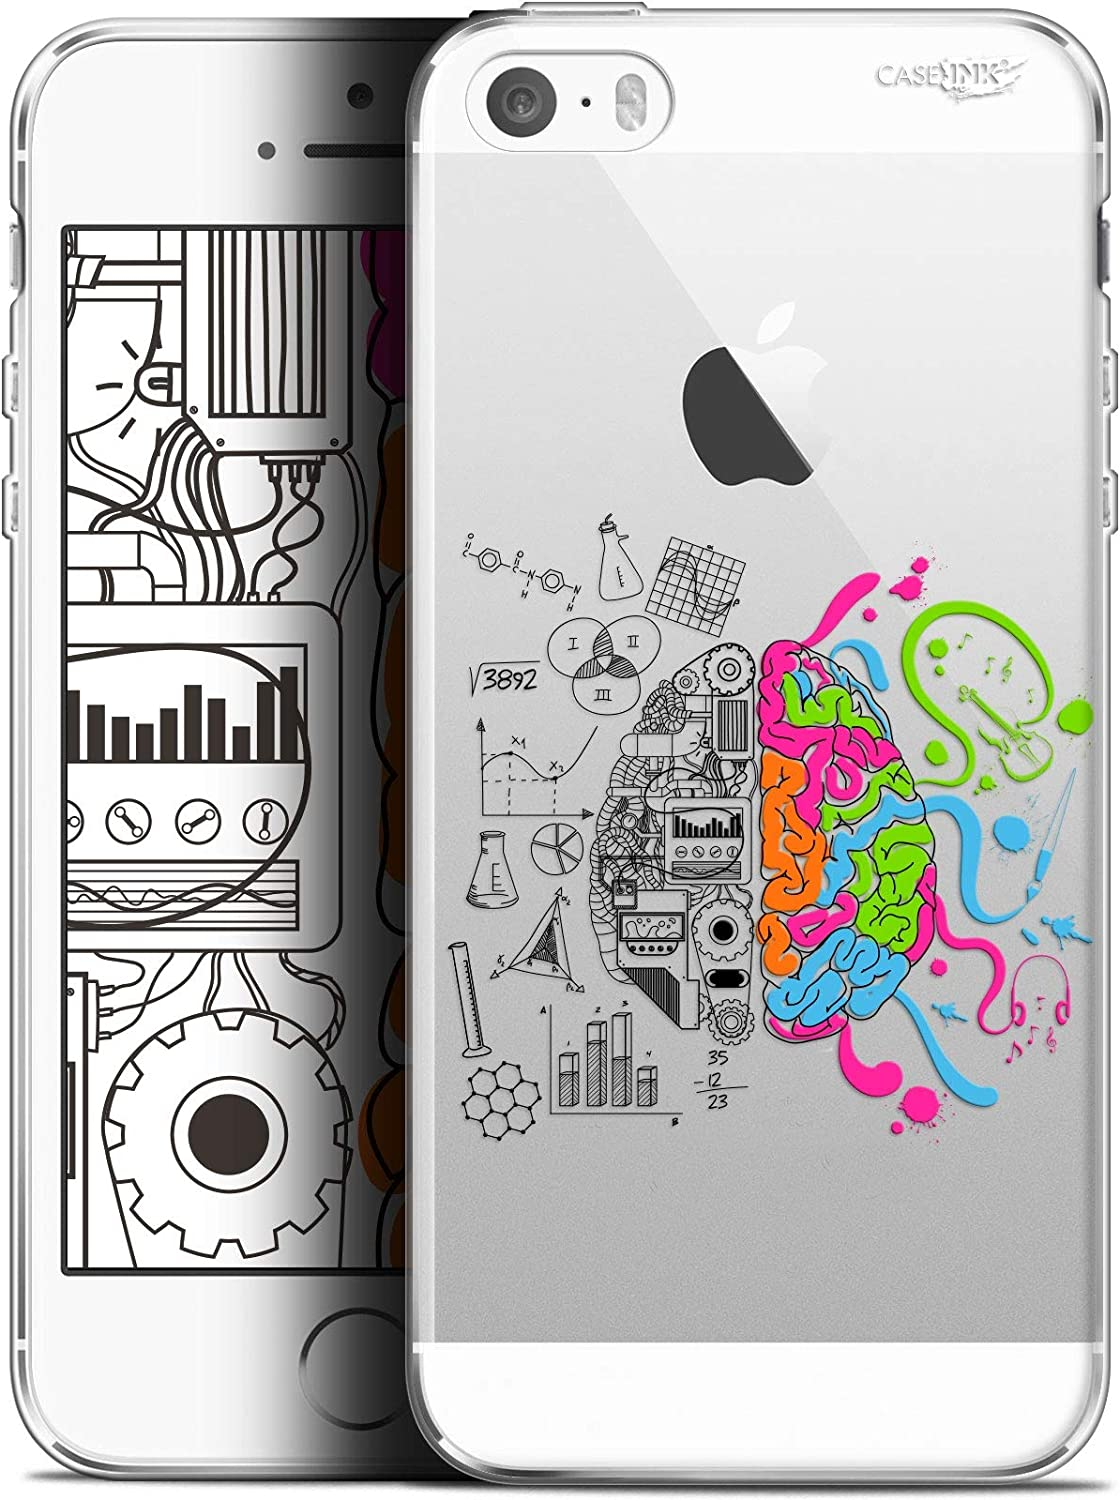 Ultra Slim Case with Brain Design for Apple iPhone 5/5S/SE 4-Inch